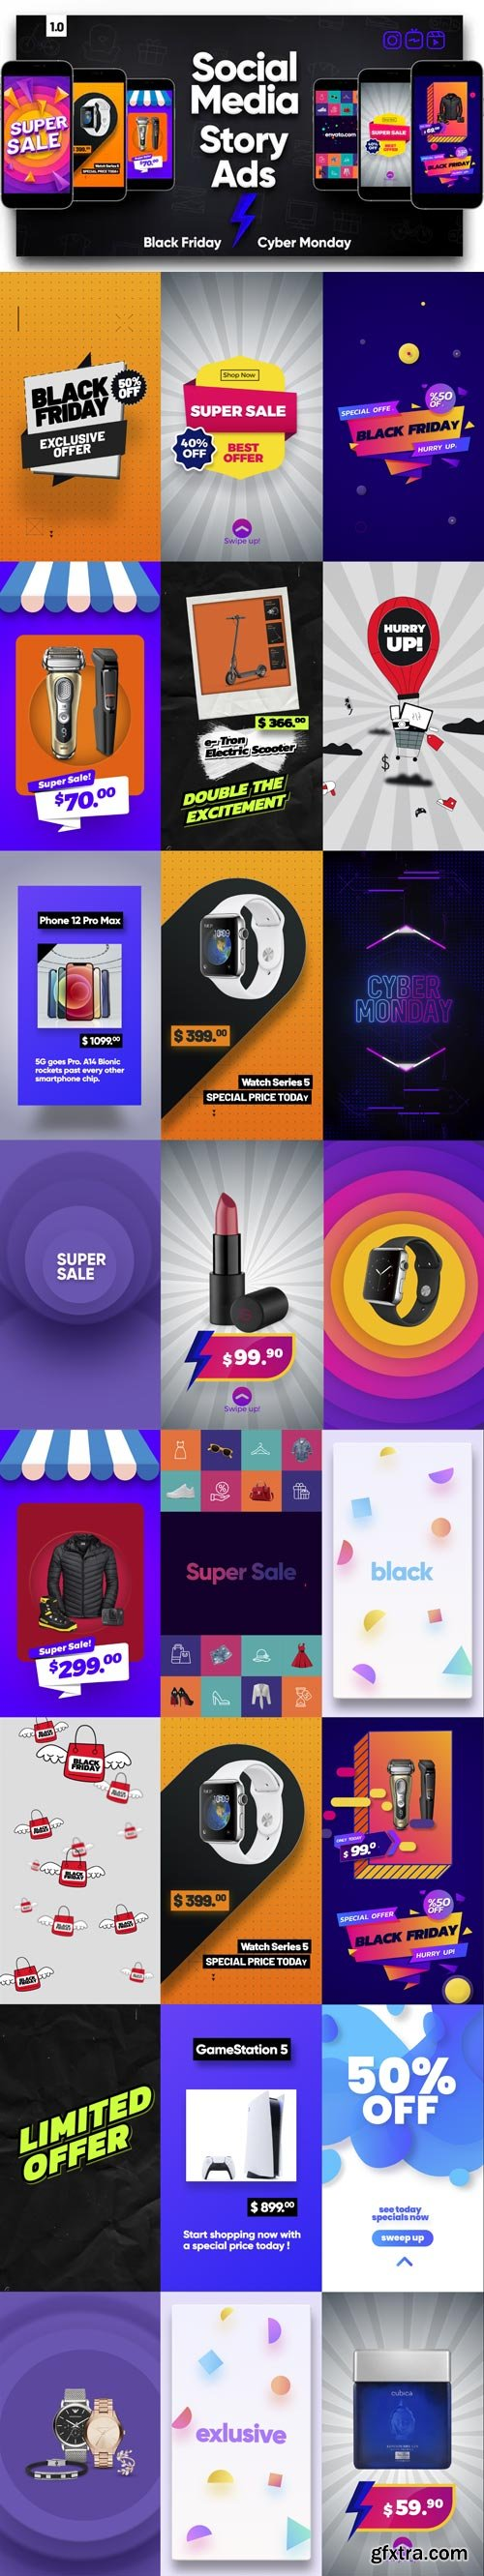 Videohive - Social Media Story Ads - 29246795